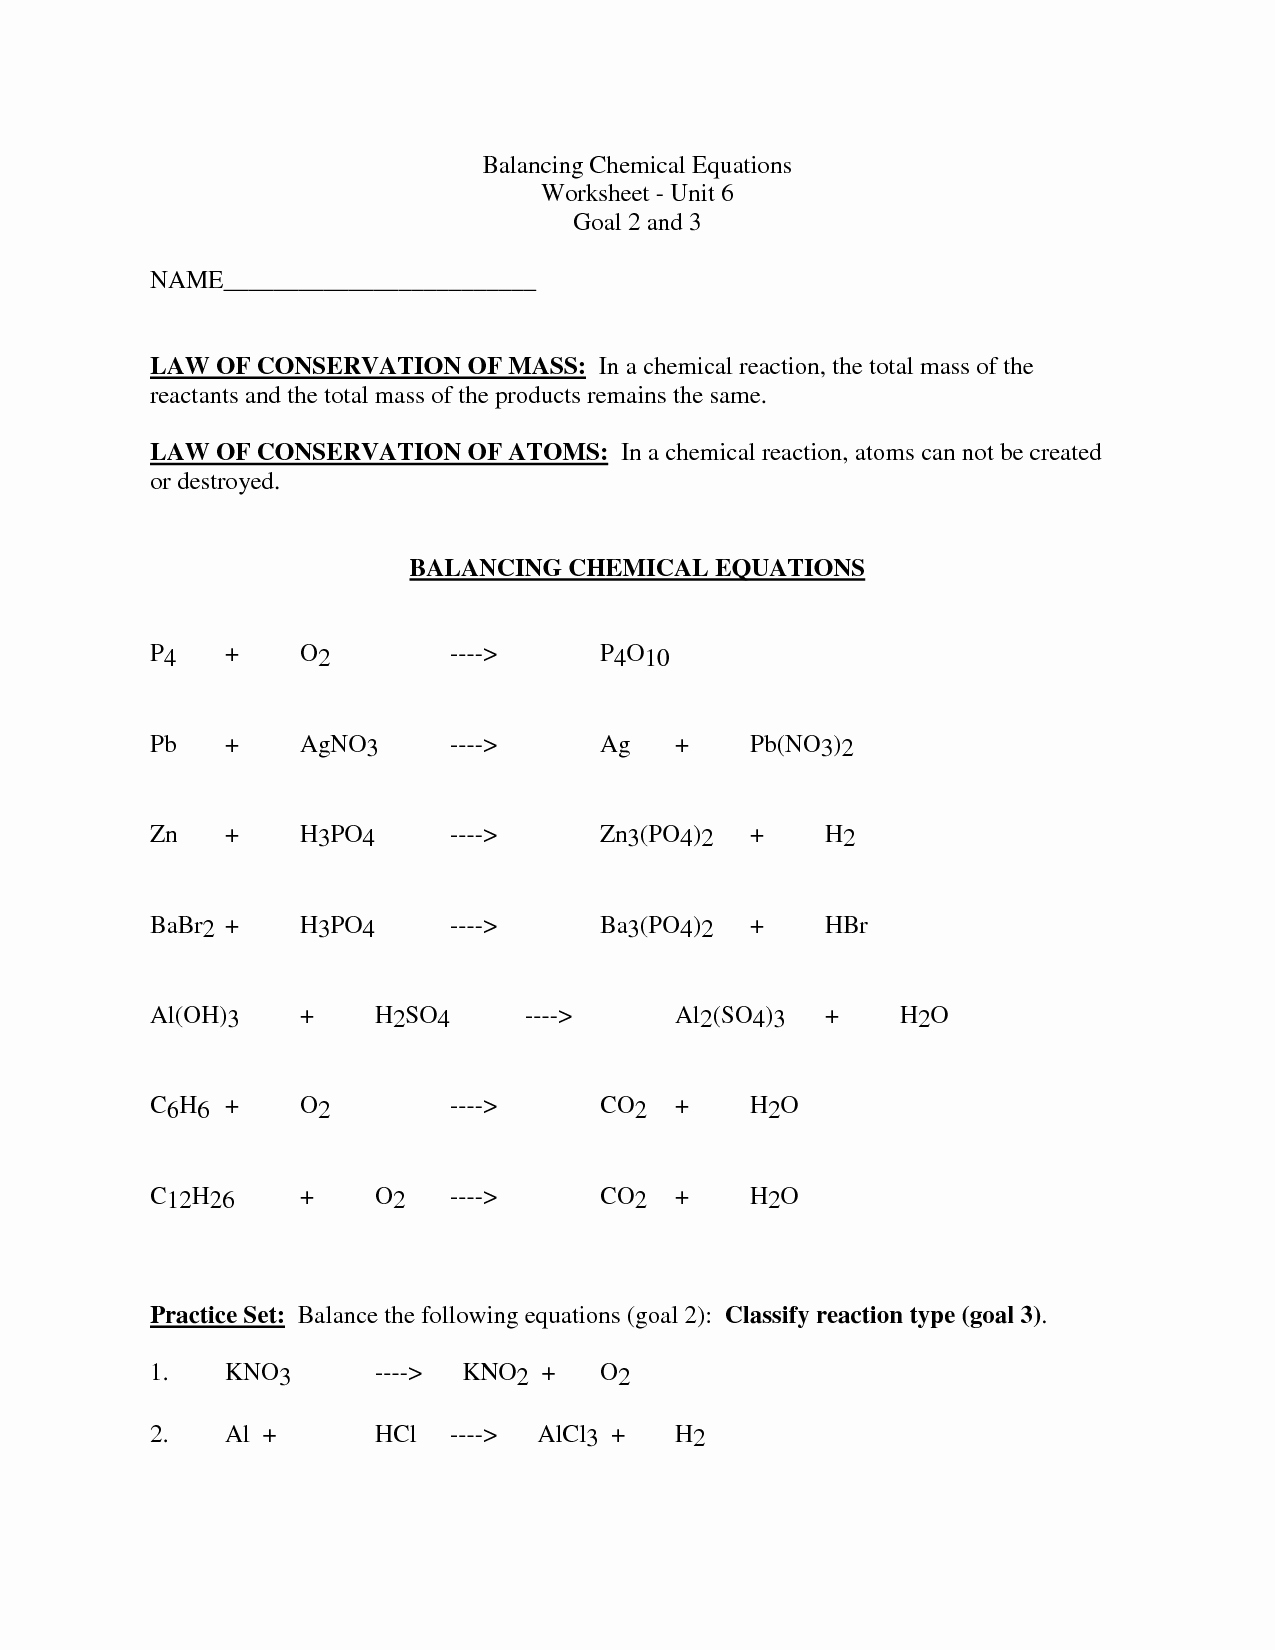 Balancing Equation Worksheet with Answers Elegant 12 Best Of Balancing Chemical Equations Worksheet